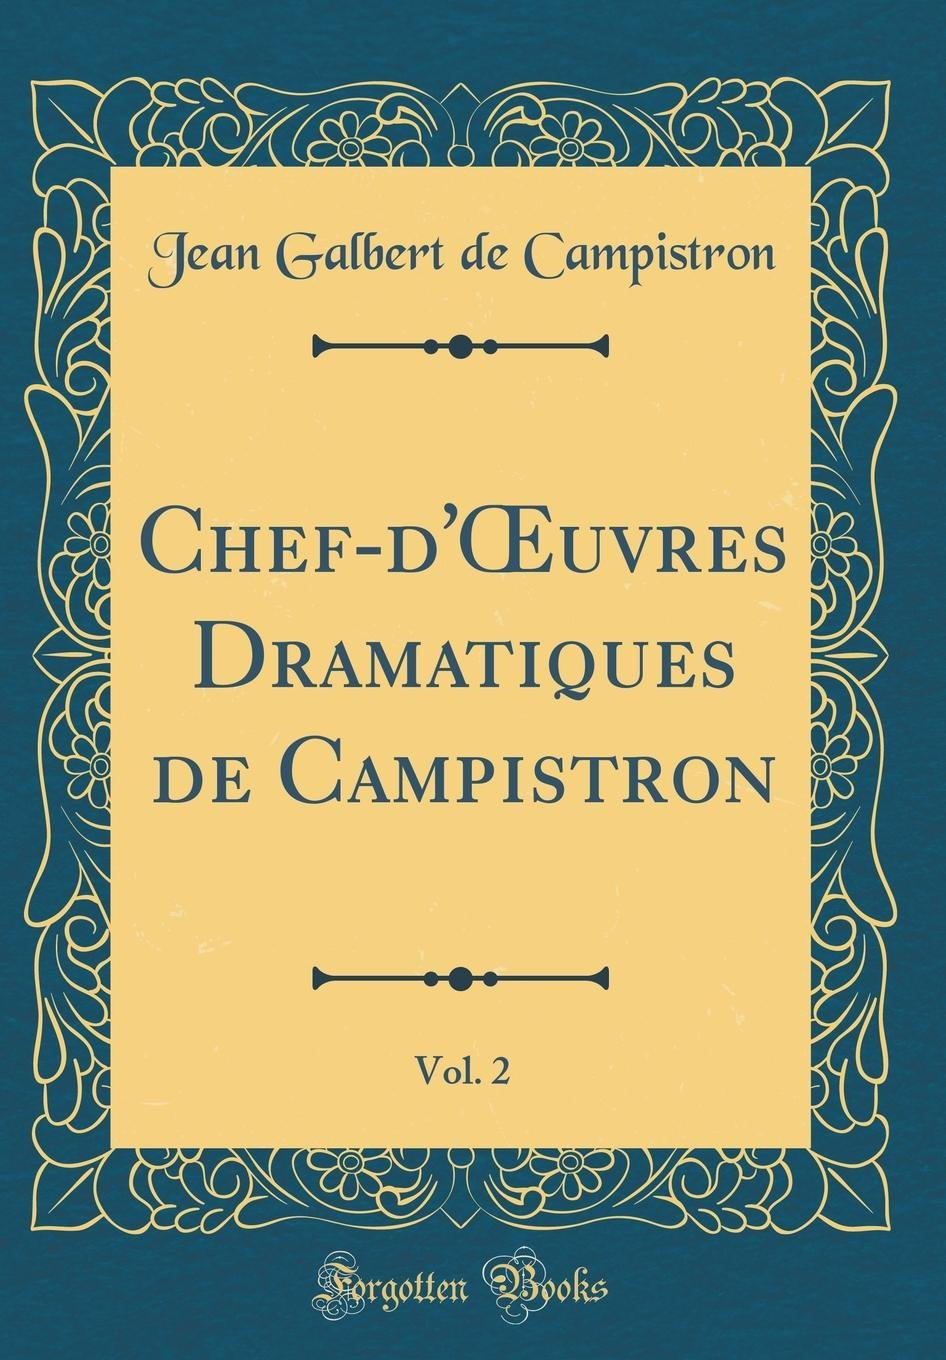 Chef-d'Oeuvres Dramatiques de Campistron, Vol. 2 (Classic Reprint) (French Edition) PDF